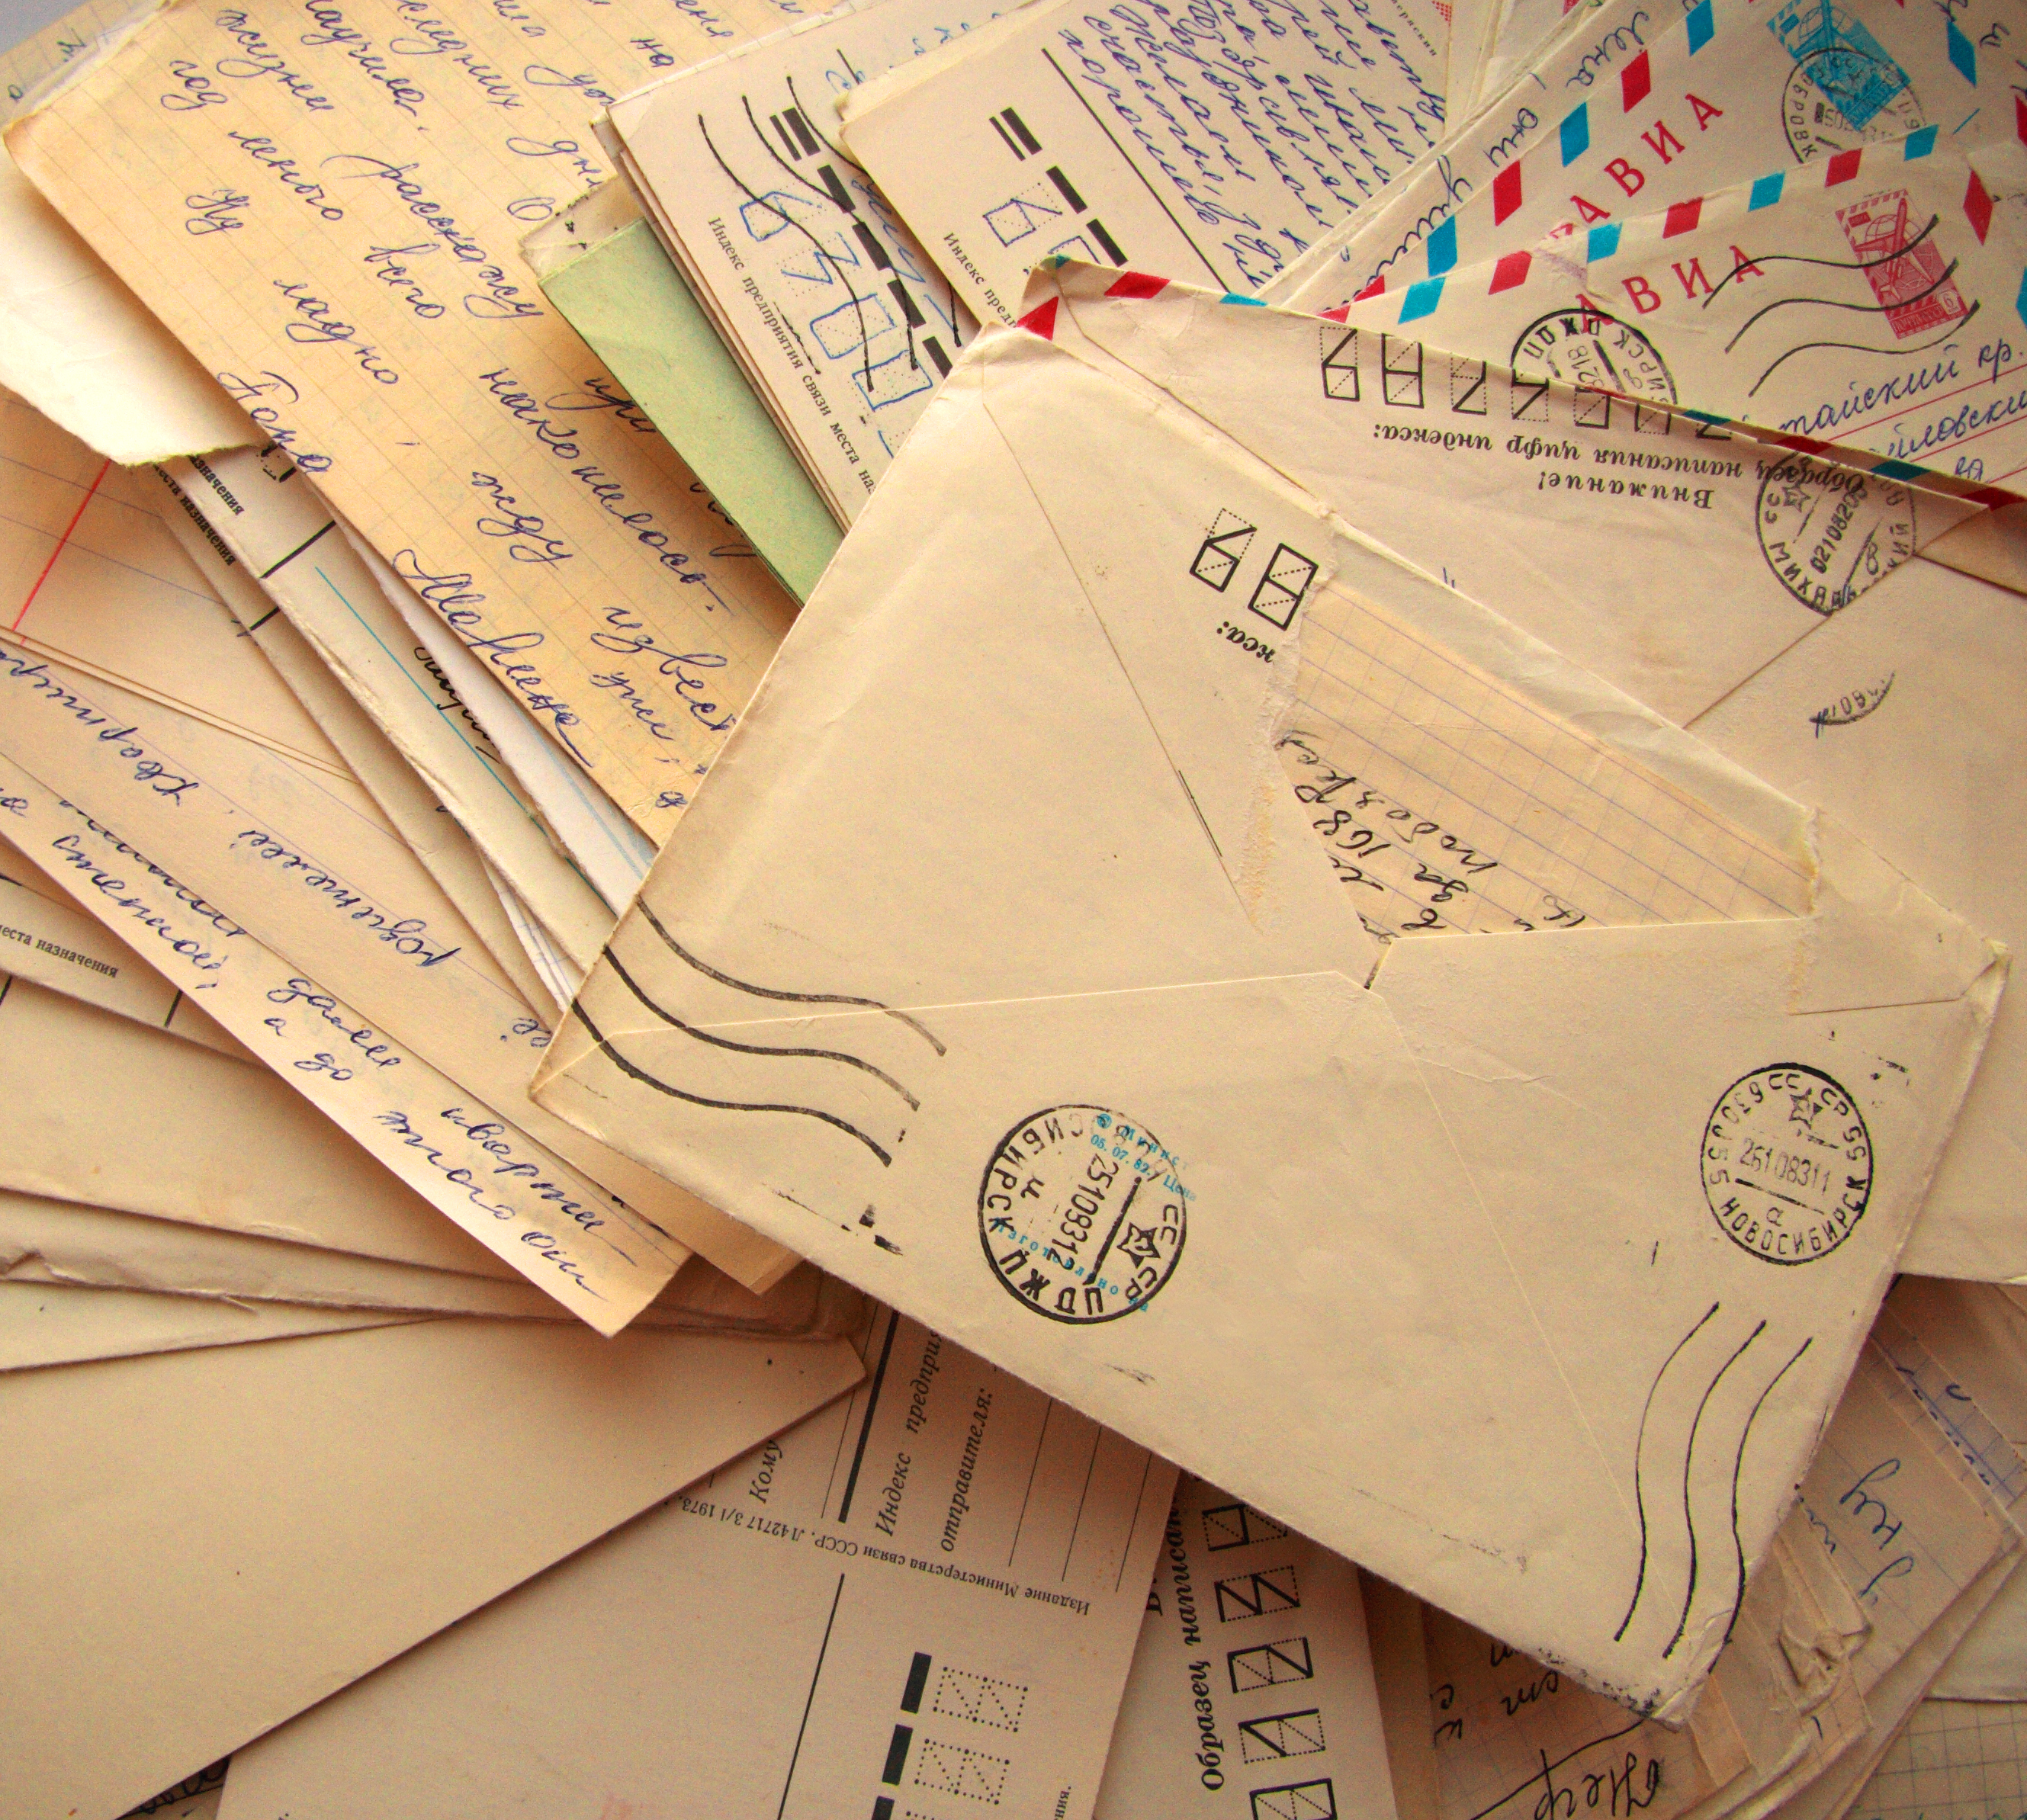 An accumulation of handwritten letters from Russia.